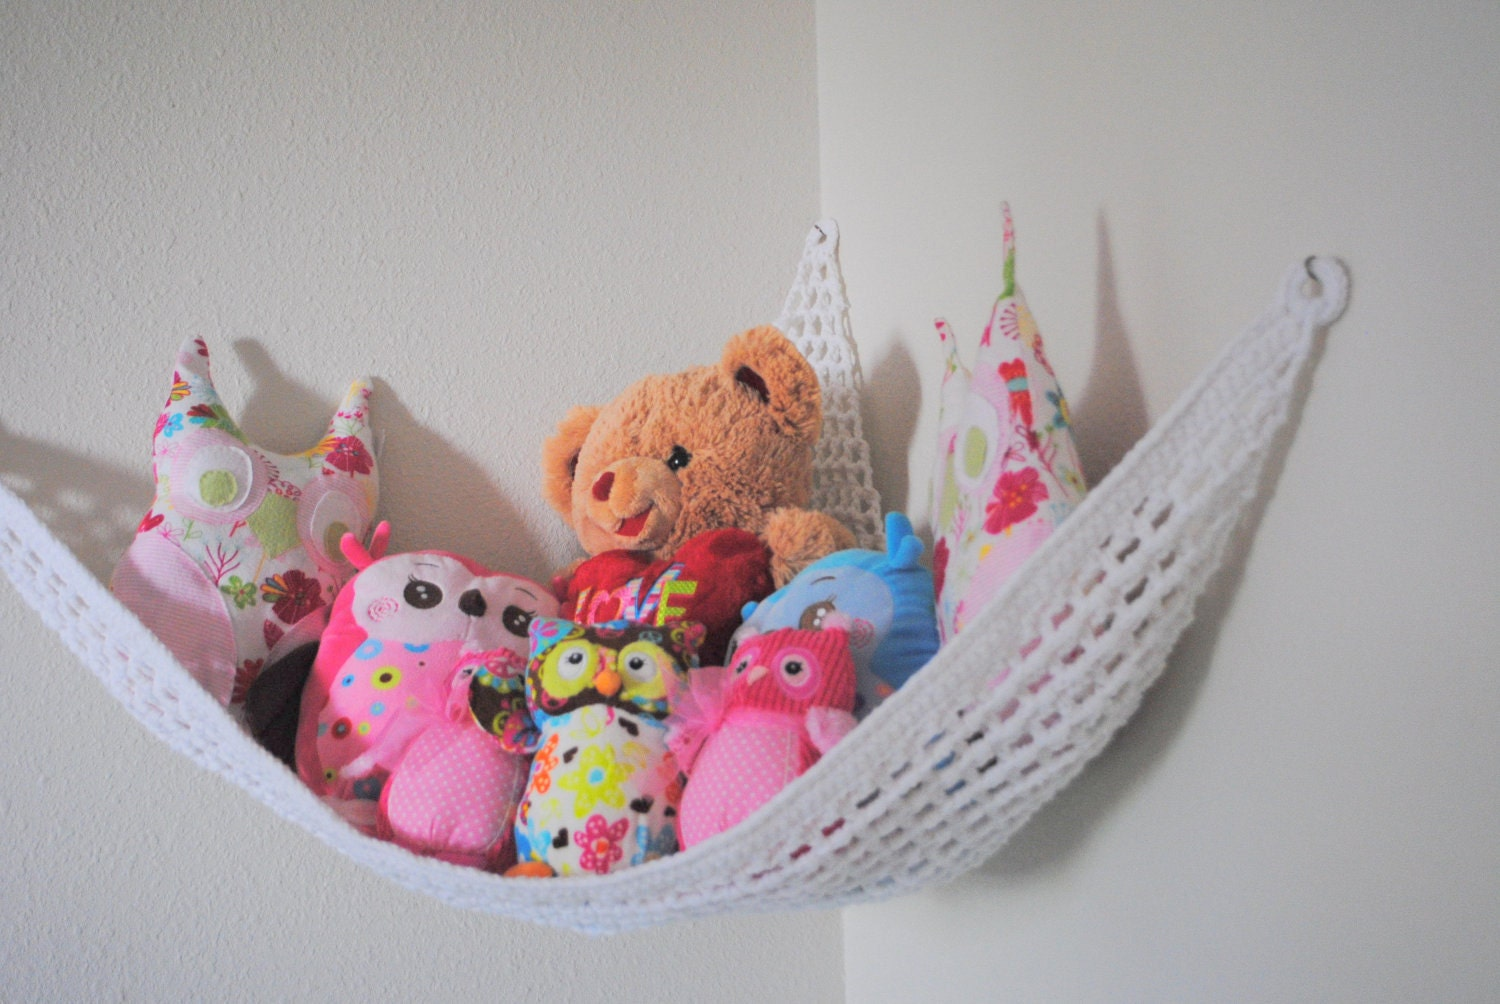 White Crocheted Stuffed Animal Hammock